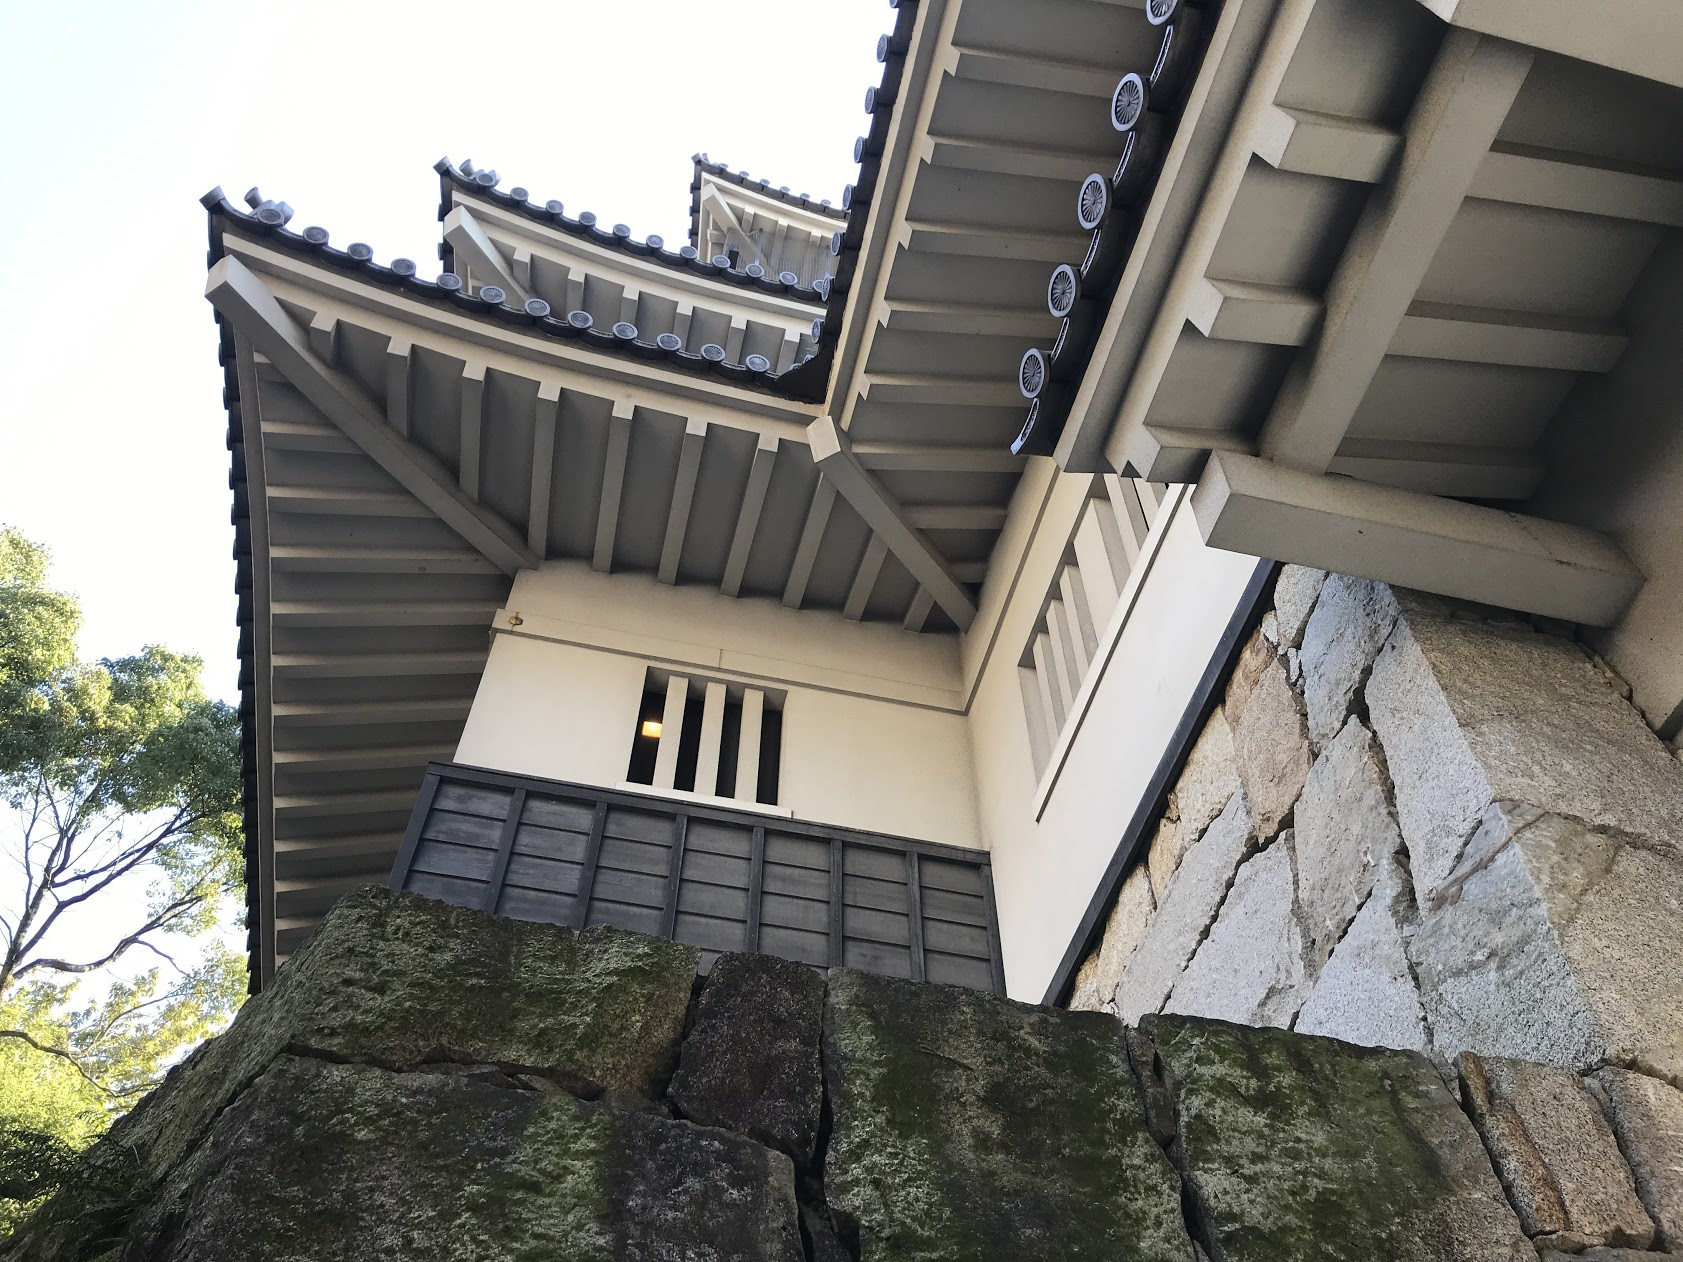 Looking up at a Japanese Castle, a common site in Japan. Every city seems to have a fortress or castle to tour. It's fascinating to study their history and see how it has shaped their culture.